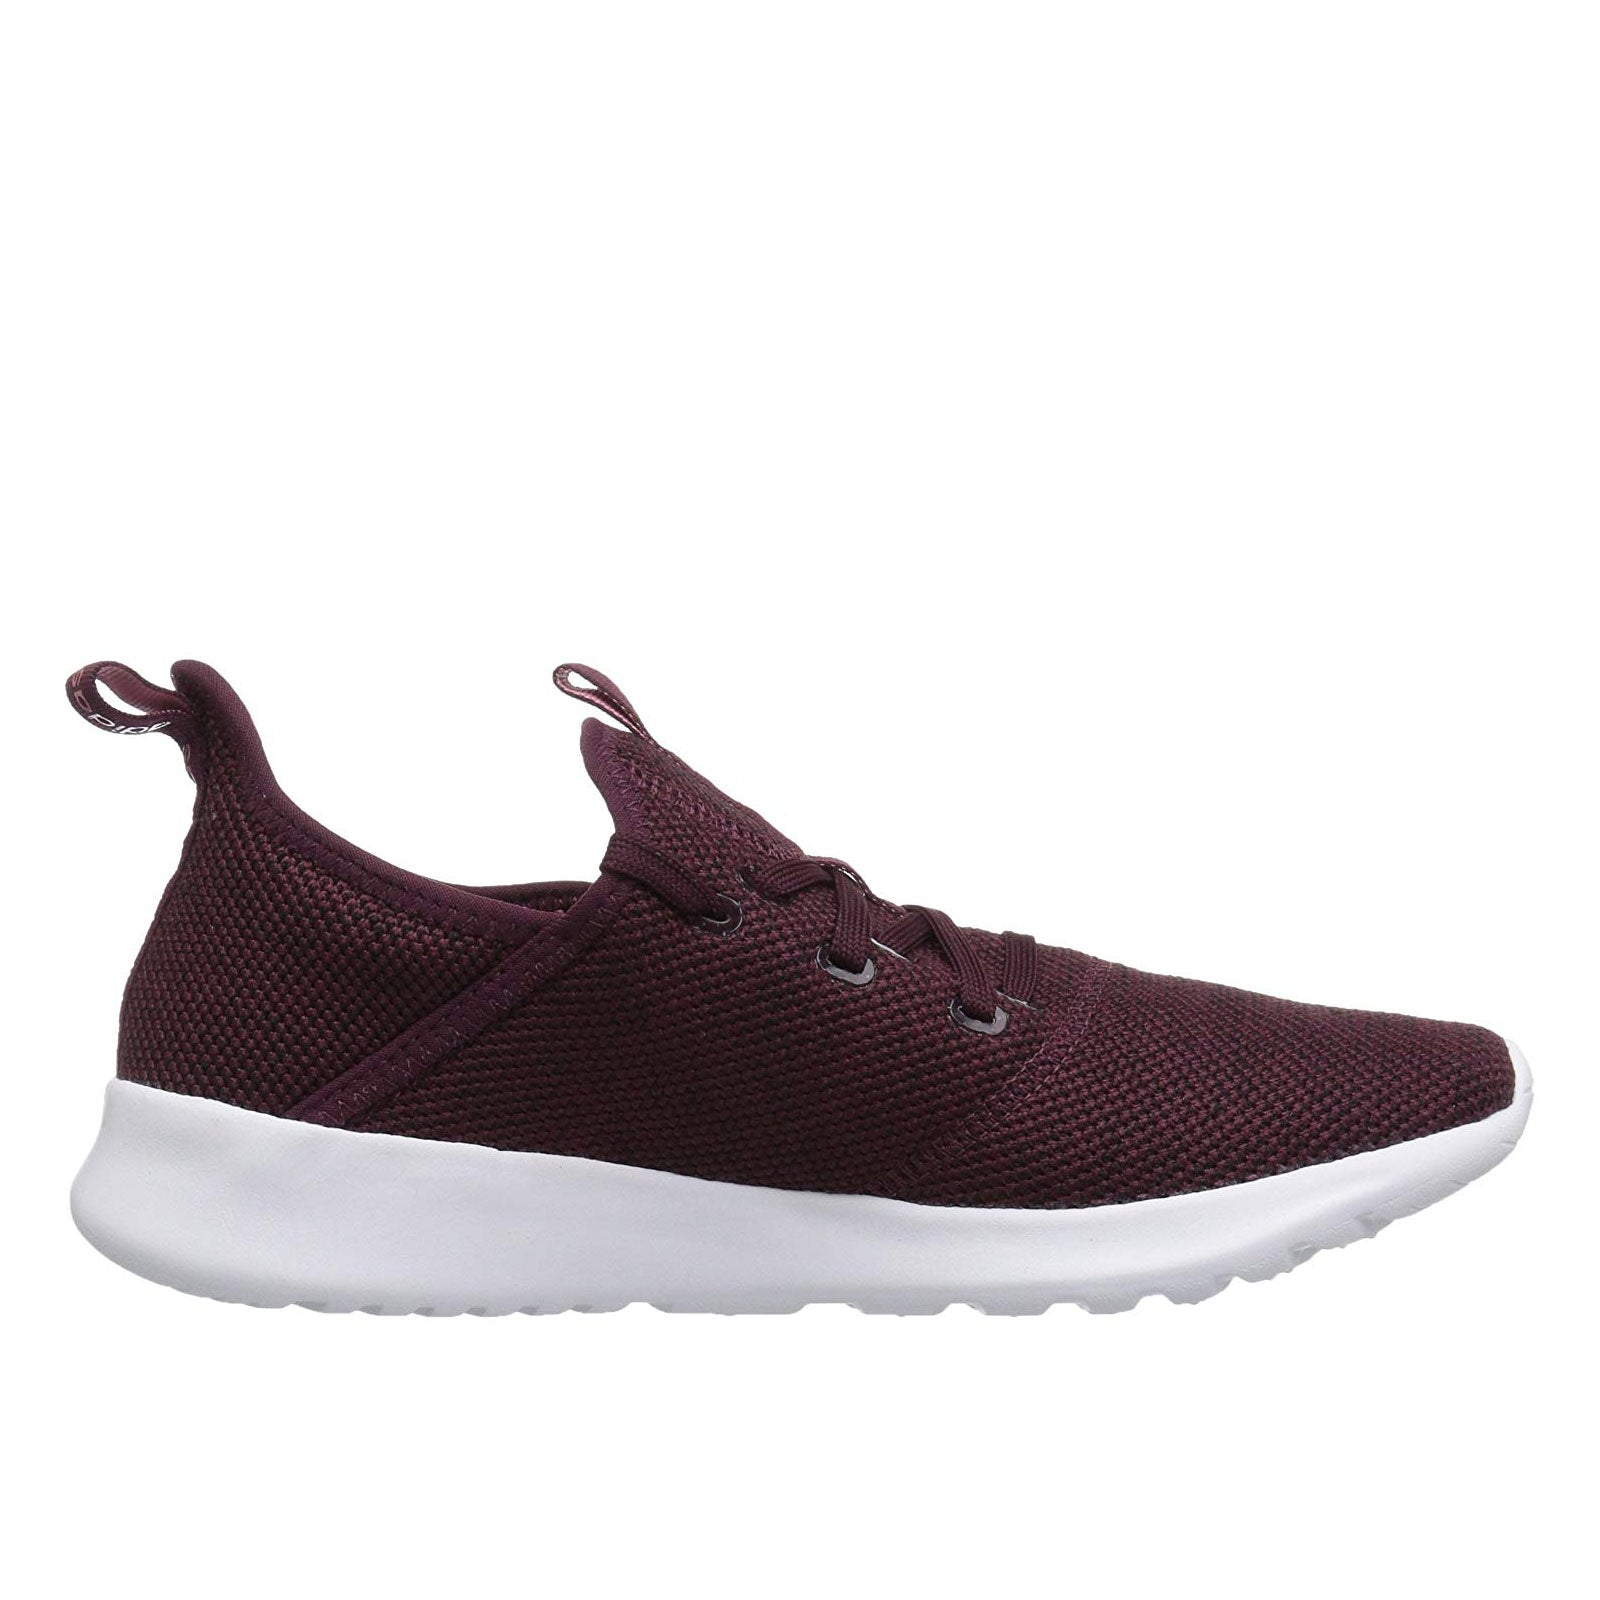 Adidas Cloudfoam Pure-Trace Maroon